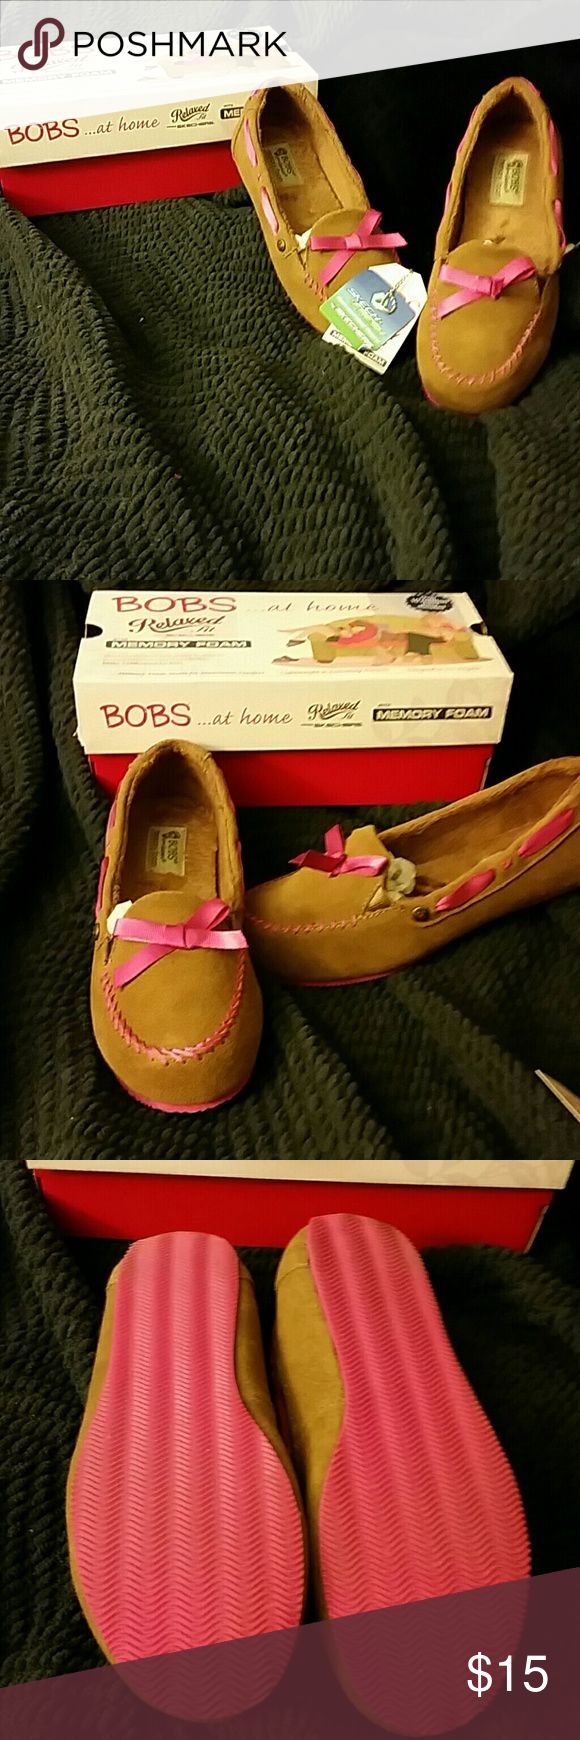 Bob's Bob's Cozy jr. Worn a couple of times at home,by my bored self purchased late last year. Take them away price cute but will get lost in the shuffle.fit like 7.5 guessing slippers? Skechers Shoes Slippers